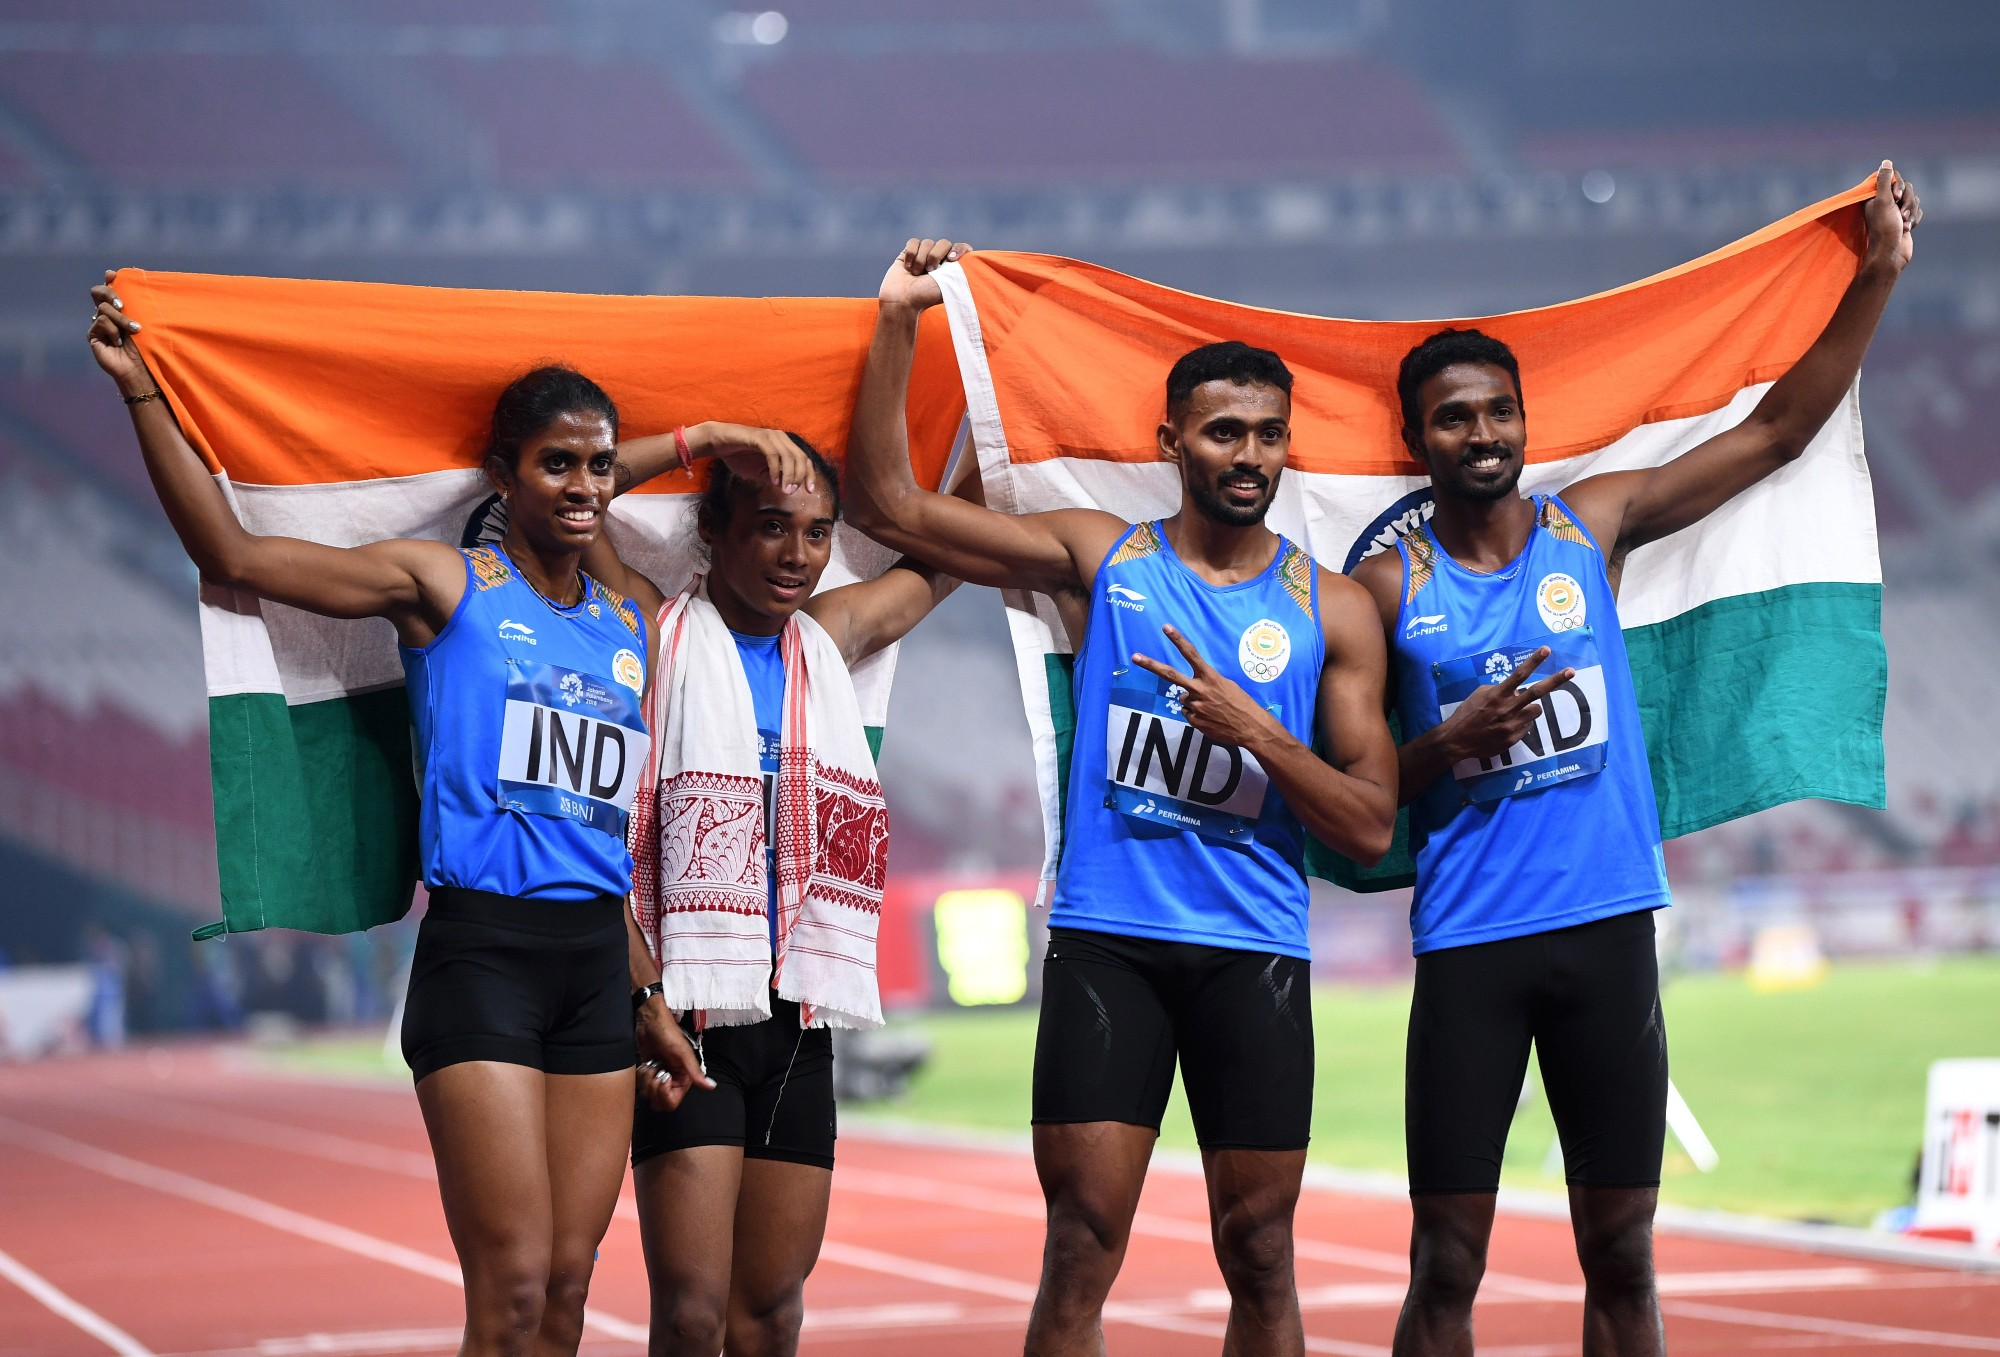 Indian 4x400m relay team at Asian Games 2018